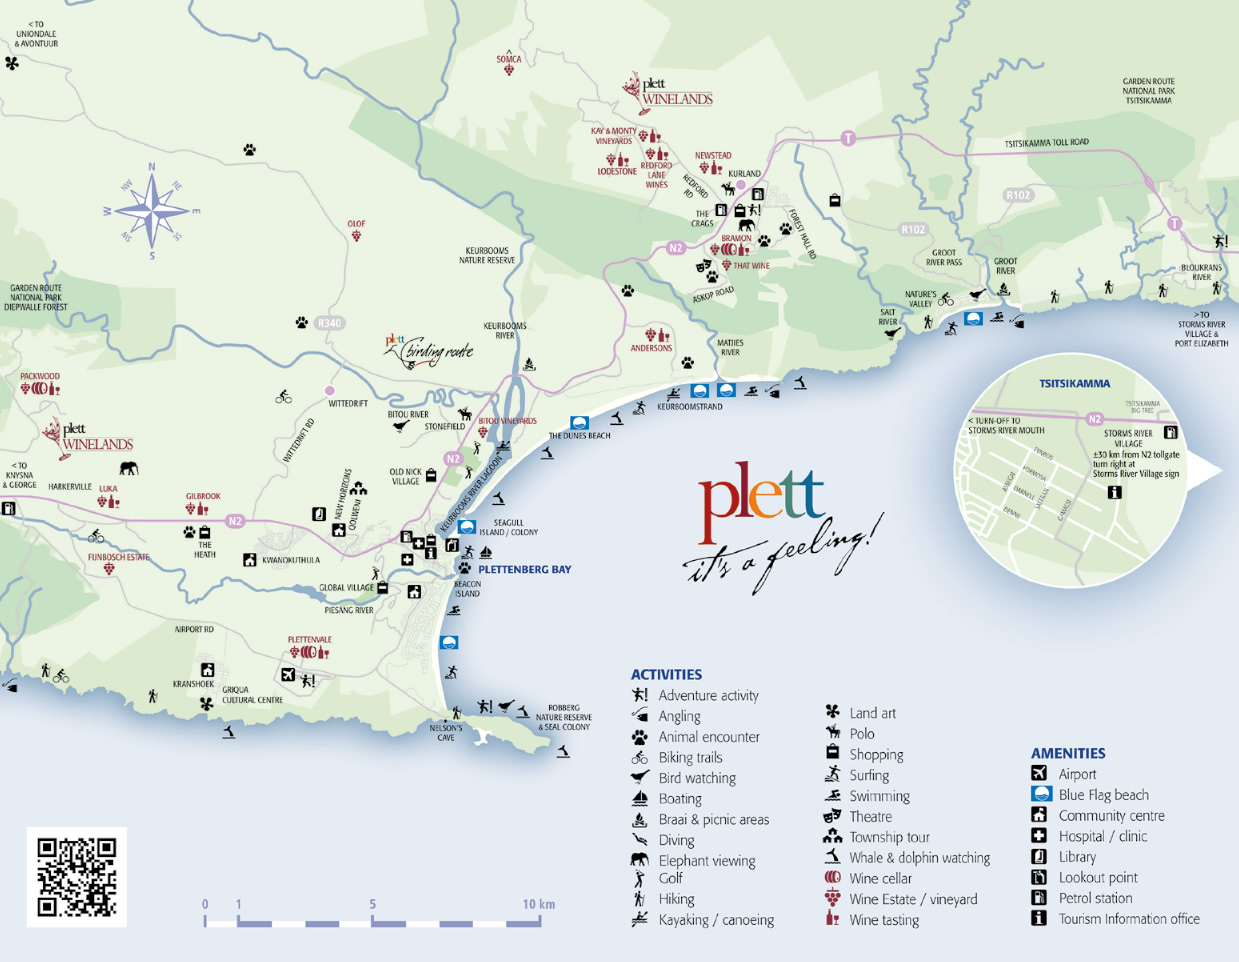 Plett Map showing the Plett Wine Route, activities etc.